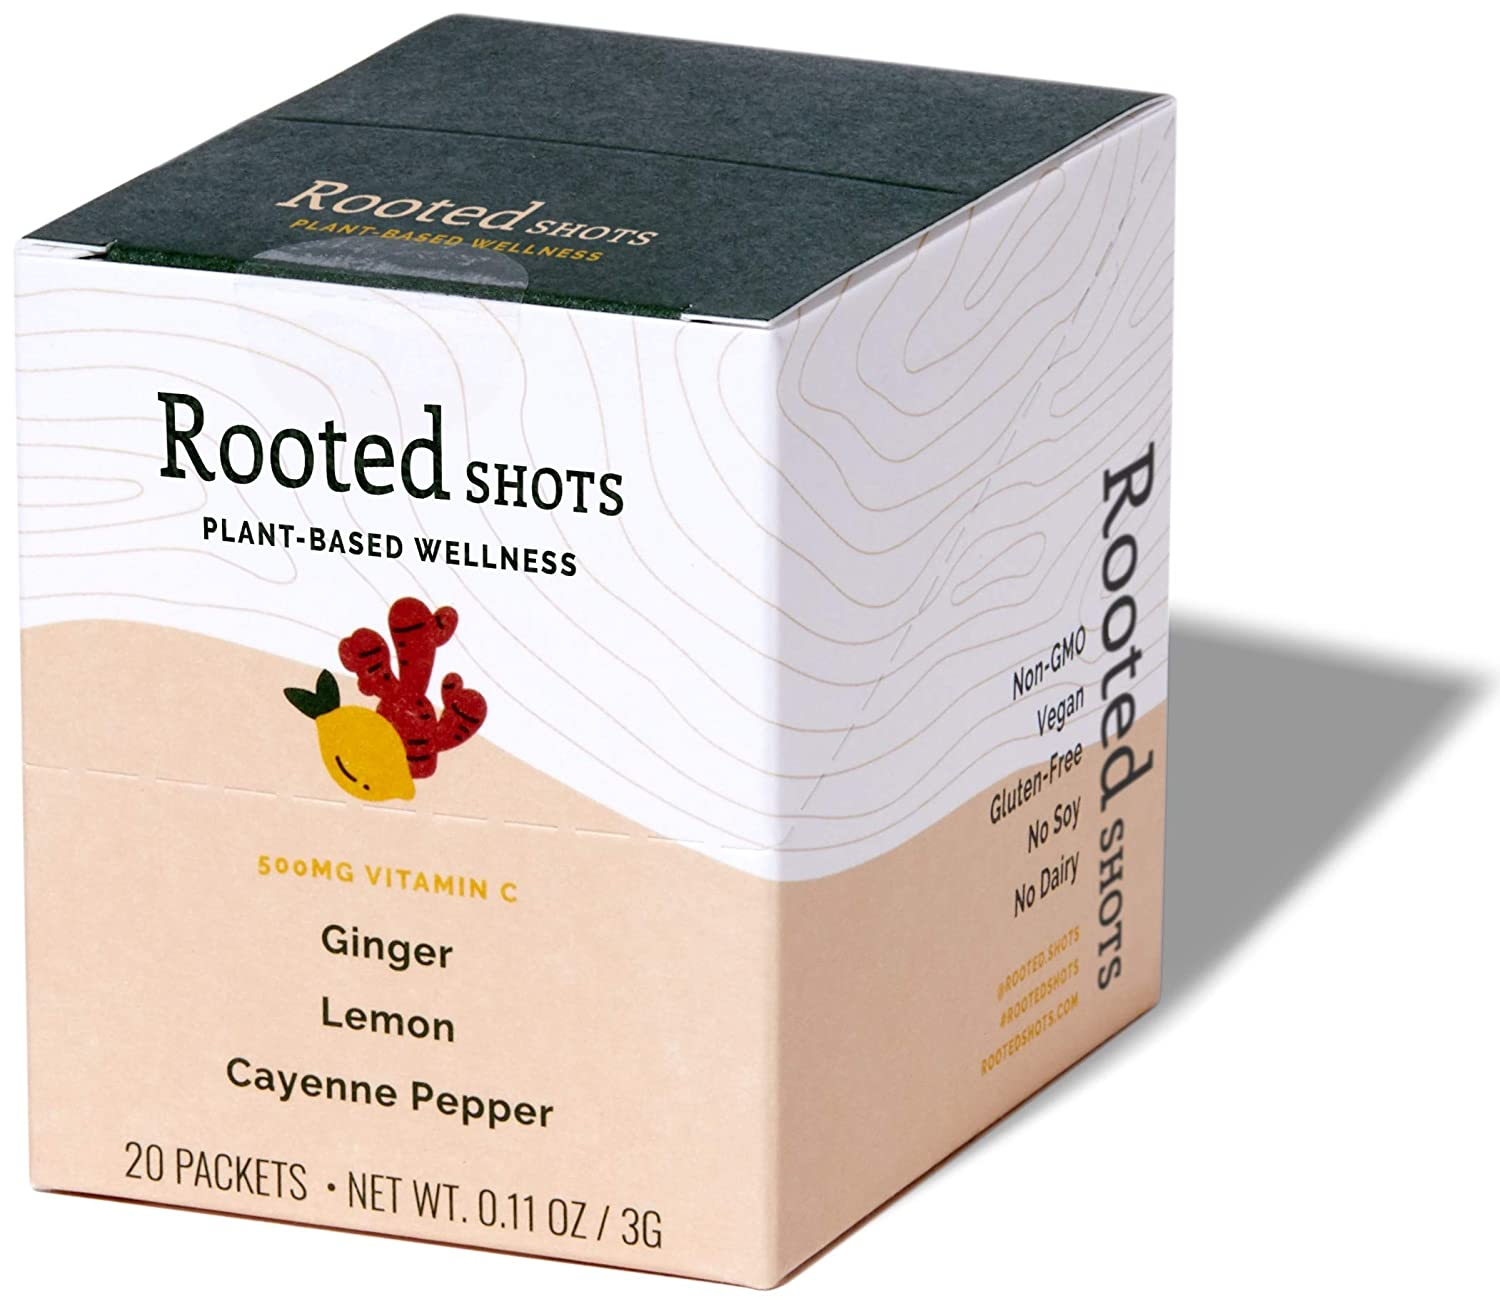 Rooted Shots - Ginger Lemon Cayenne Pepper Shot, 500mg Vitamin C, Non-GMO, Vegan, (20 Dried Plant-Based Wellness Blends)